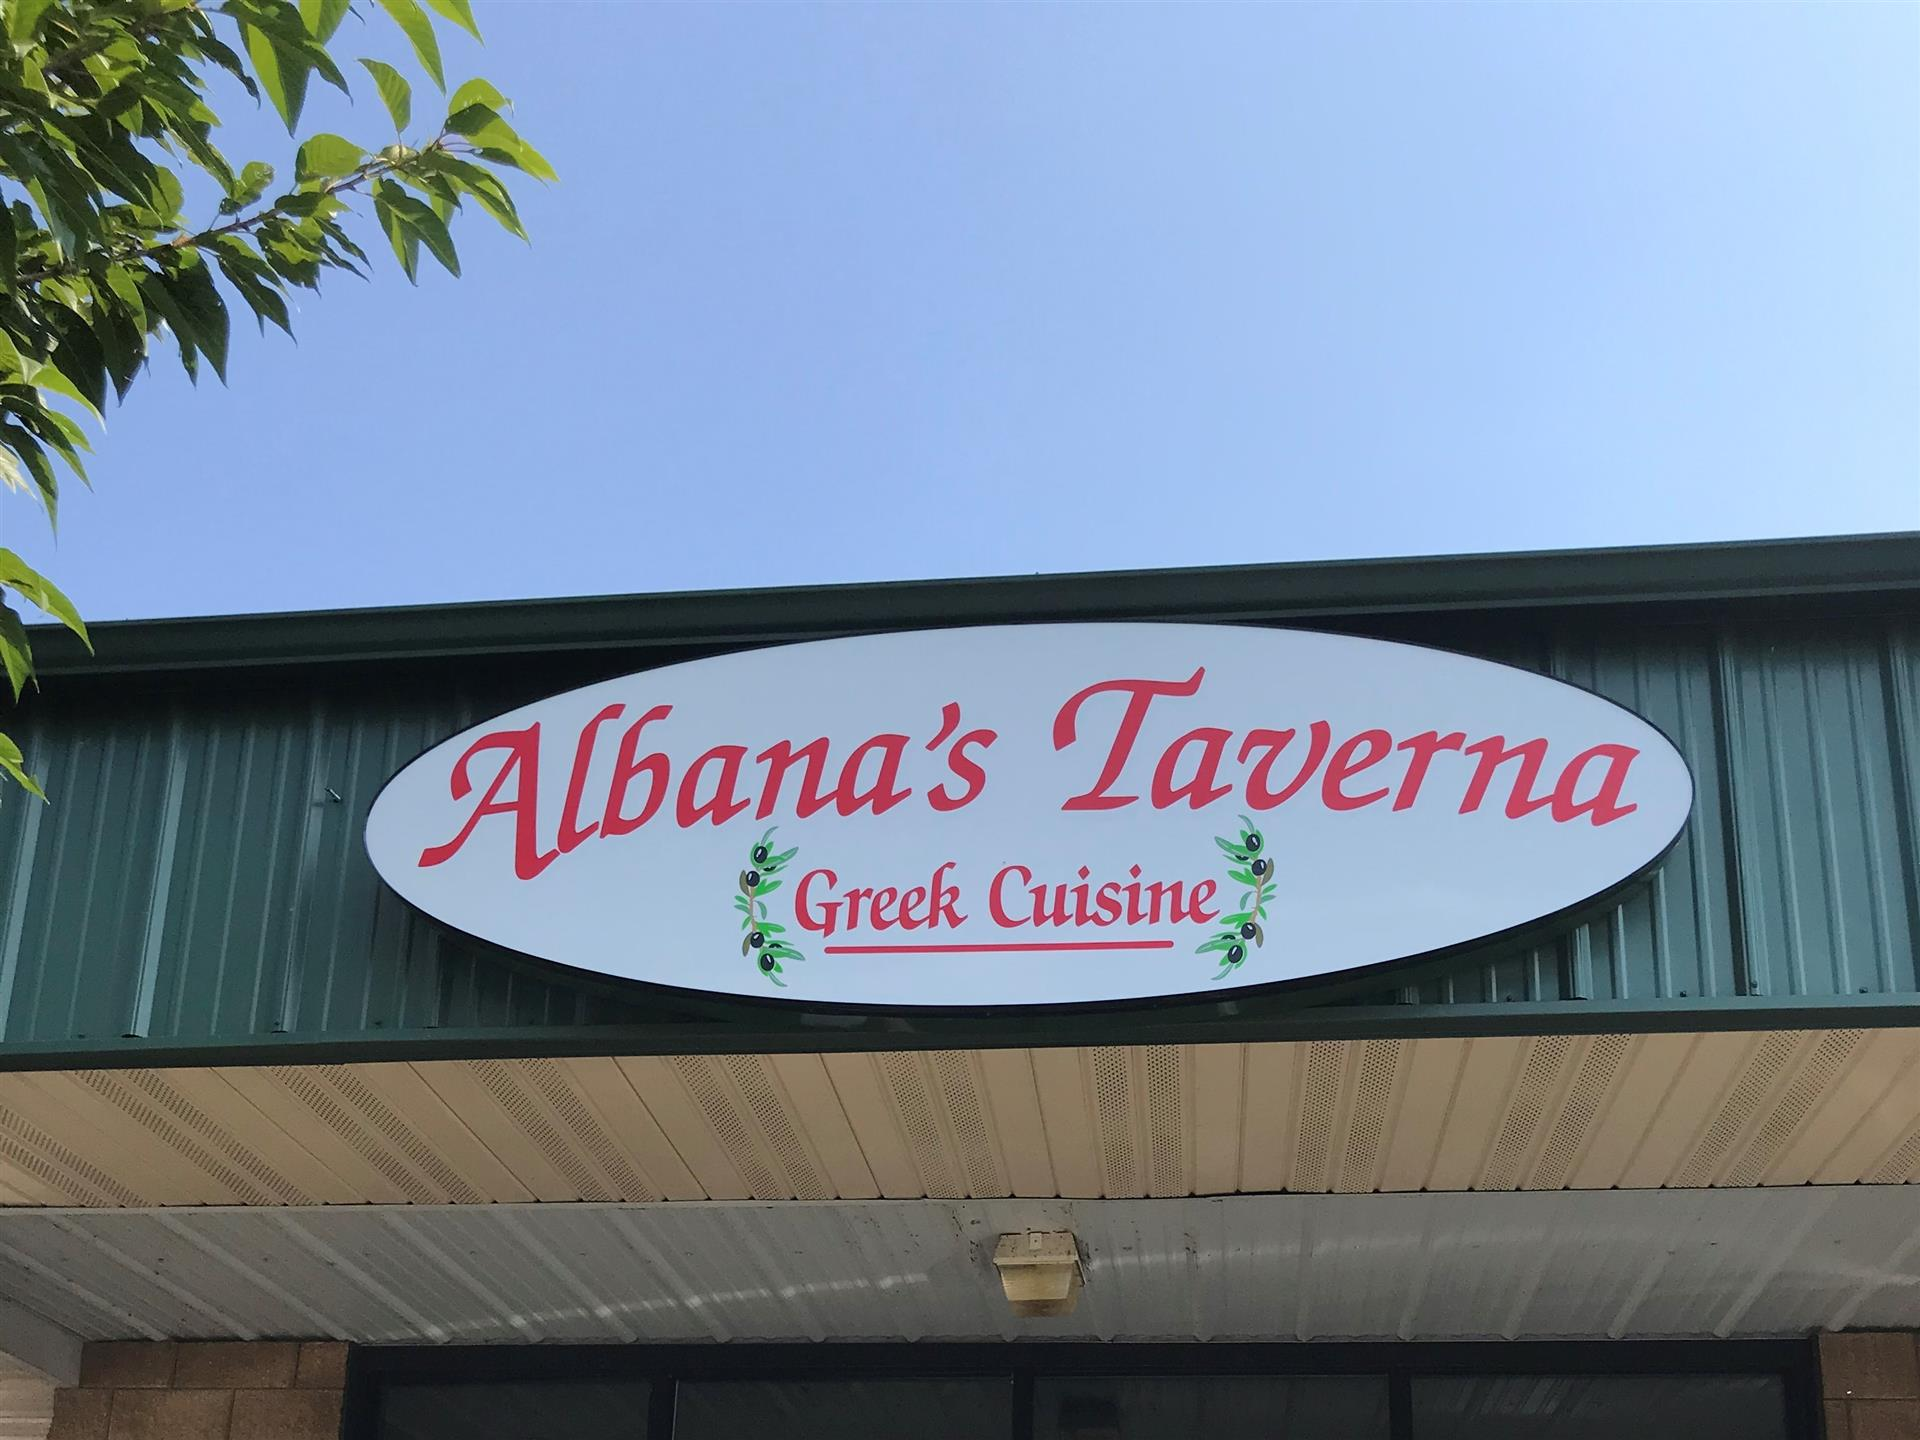 Albana's Taverna greek cuisine sign over storefront